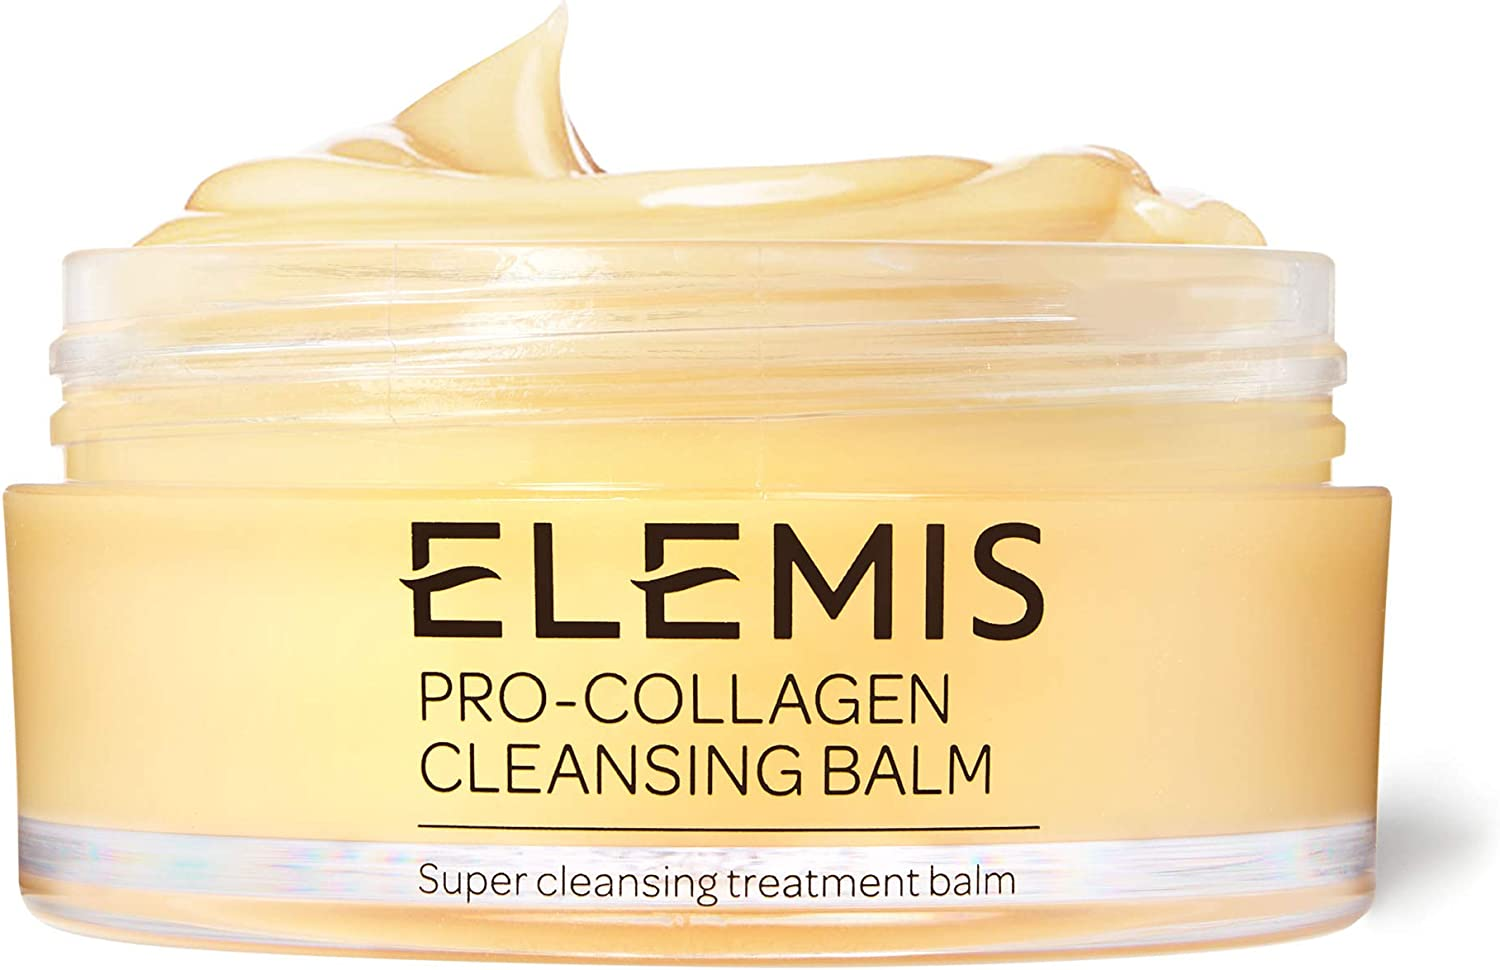 Elemis Pro-Collagen Cleansing Balm, 3-in-1 Deep Cleansing Milk to Nourish & Renew, Facial Cleanser Infused with Rose & 9 Essential Oils, Makeup Remover for a Glowing Complexion, Skin Cleanser 100 g :